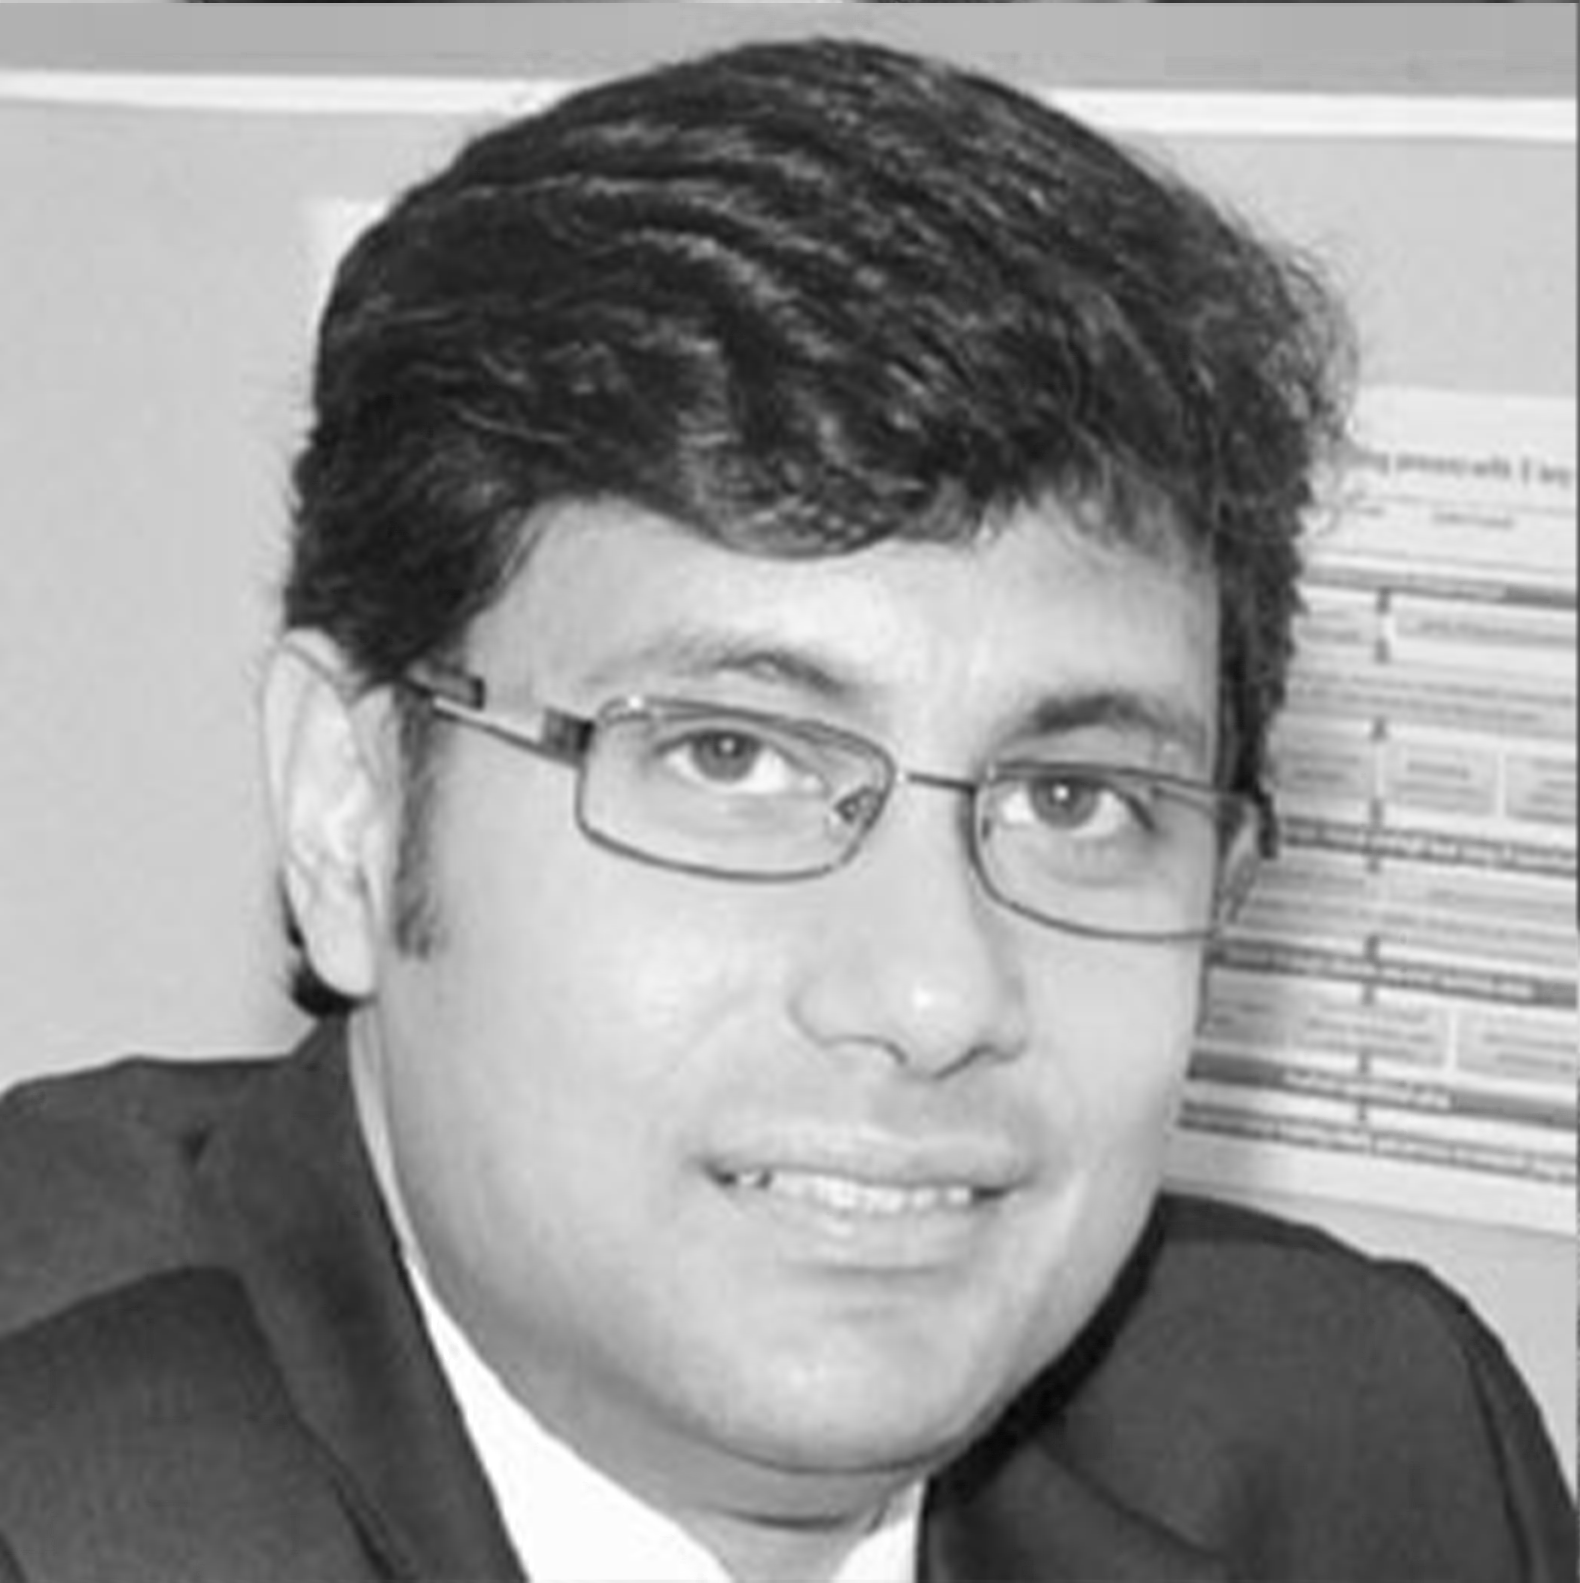 """Debabrata Mukherjee - CMO, UNITED BREWERIES, In 2014 he was awarded the """"Beverage Marketer of the Year"""" award by the IAA in the FMCG Beverages"""